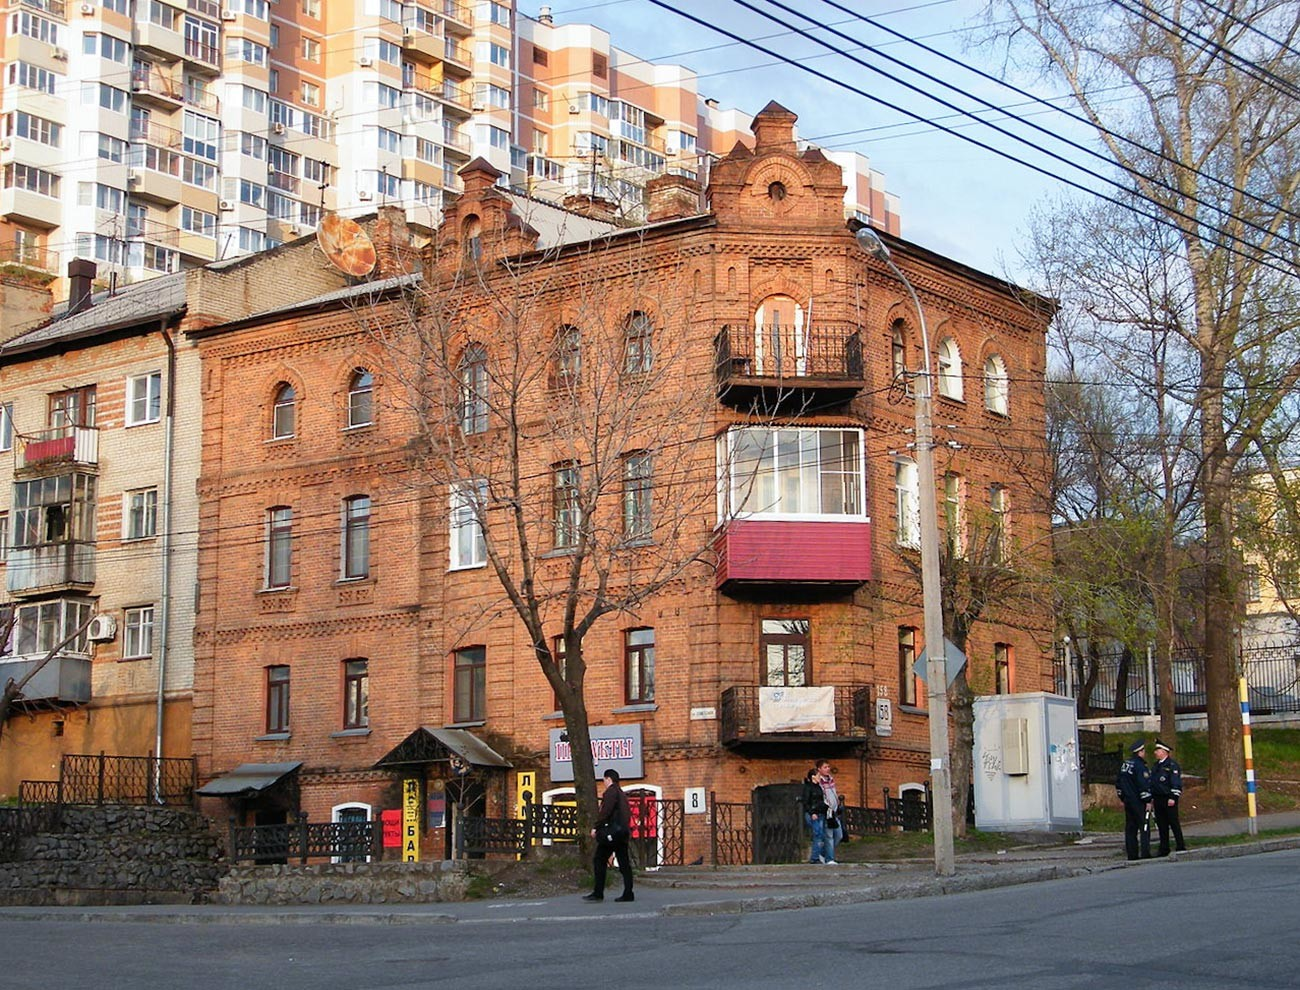 Tifontais Haus in Chabarowsk